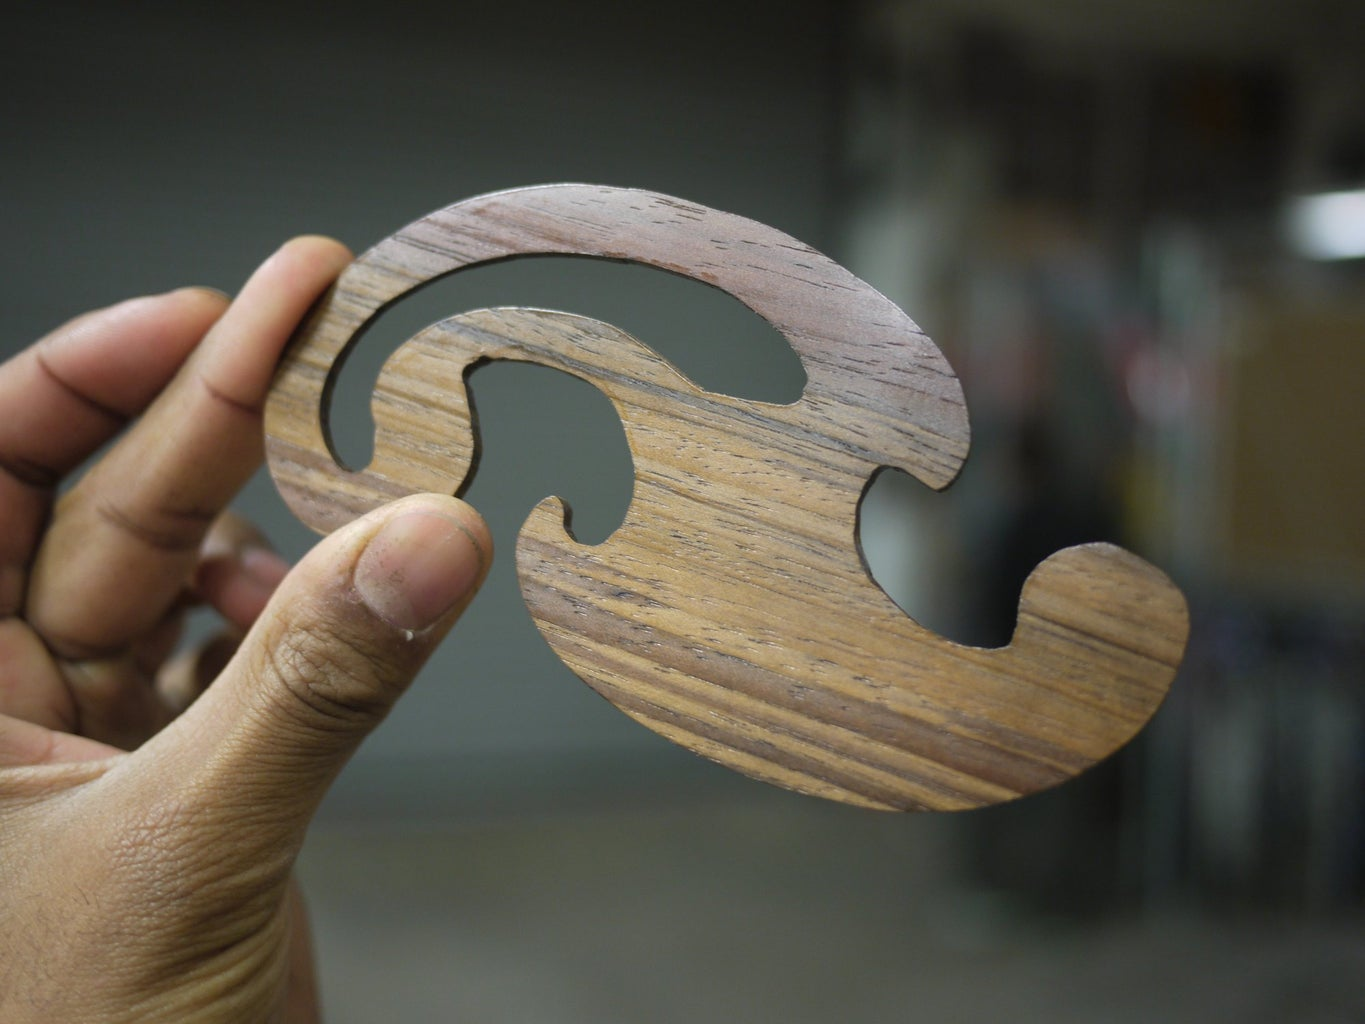 Wooden French Curves - Made at Techshop